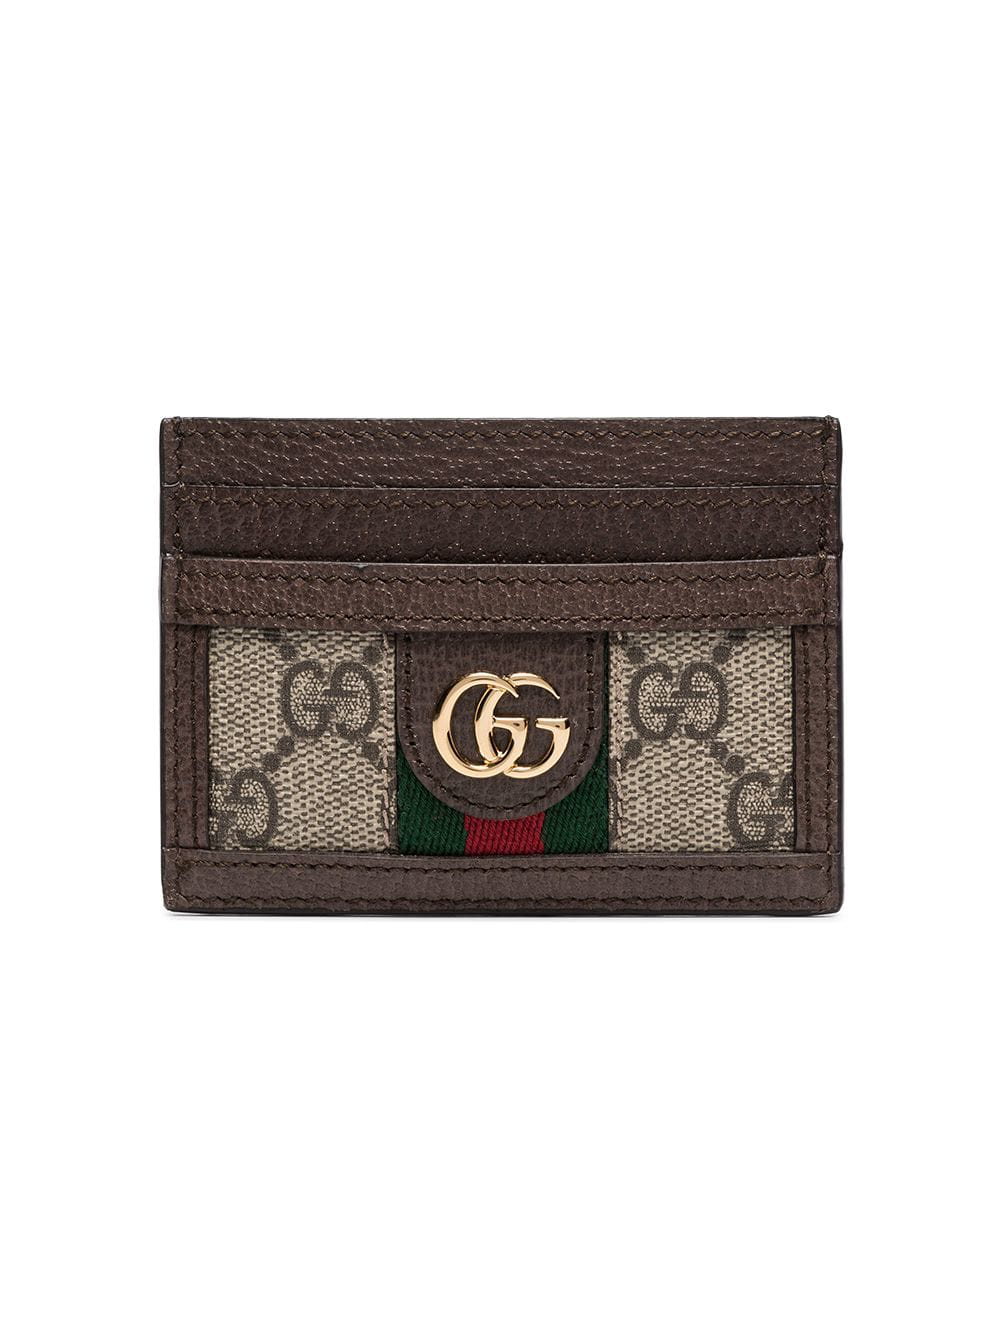 5e106aead3a Gucci Ophidia Textured Leather-Trimmed Printed Coated-Canvas Cardholder In  Neutral